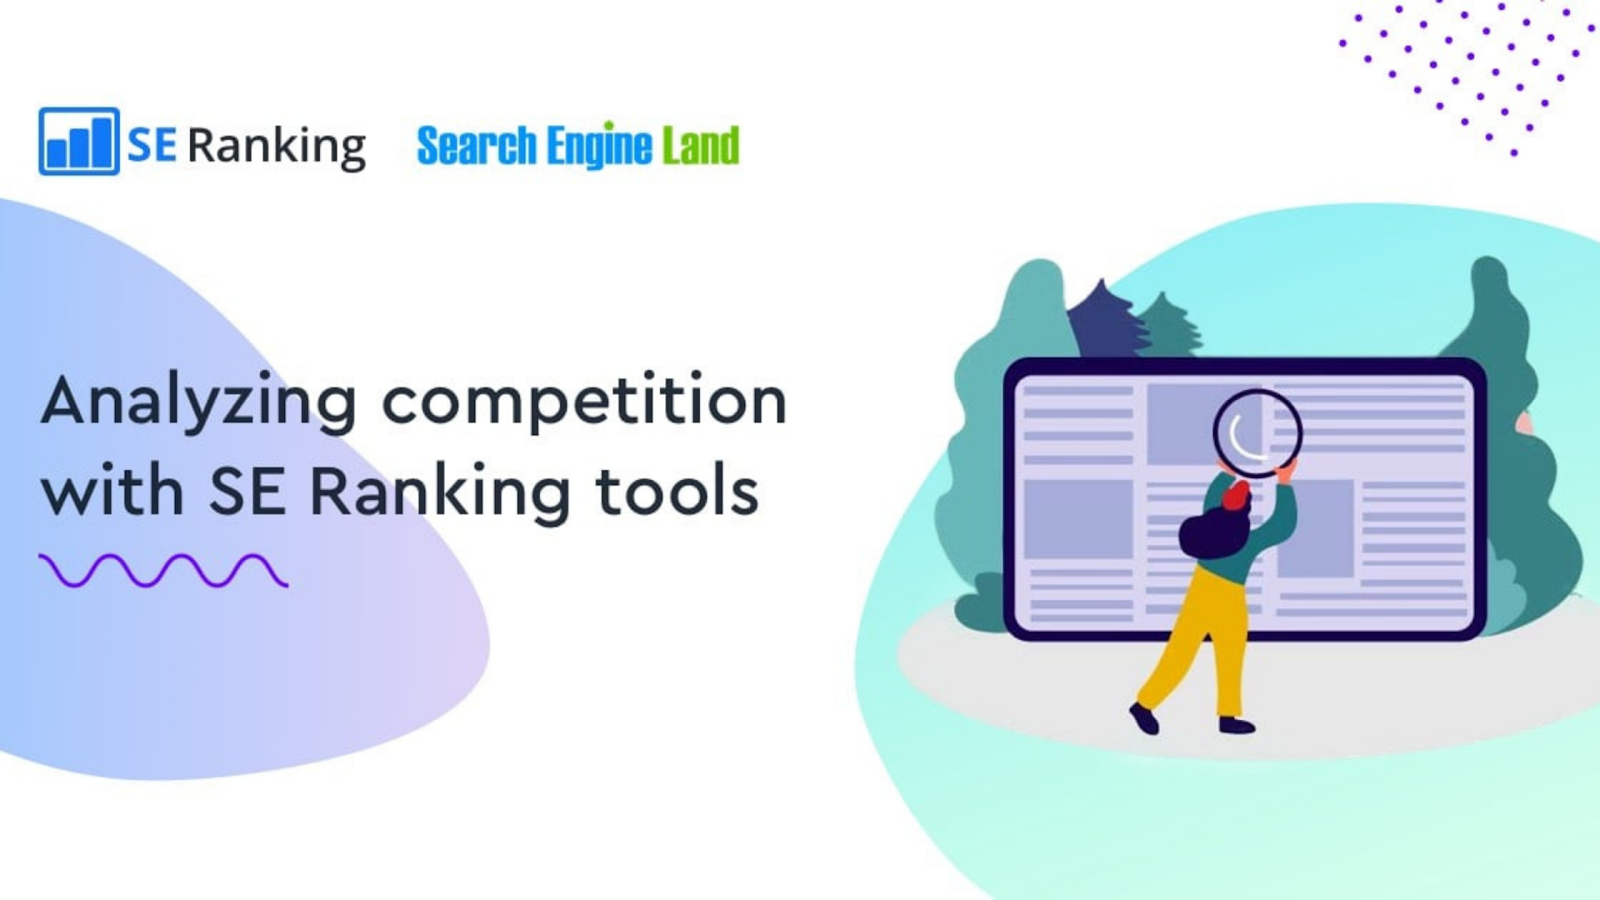 SE Ranking competitor research tool